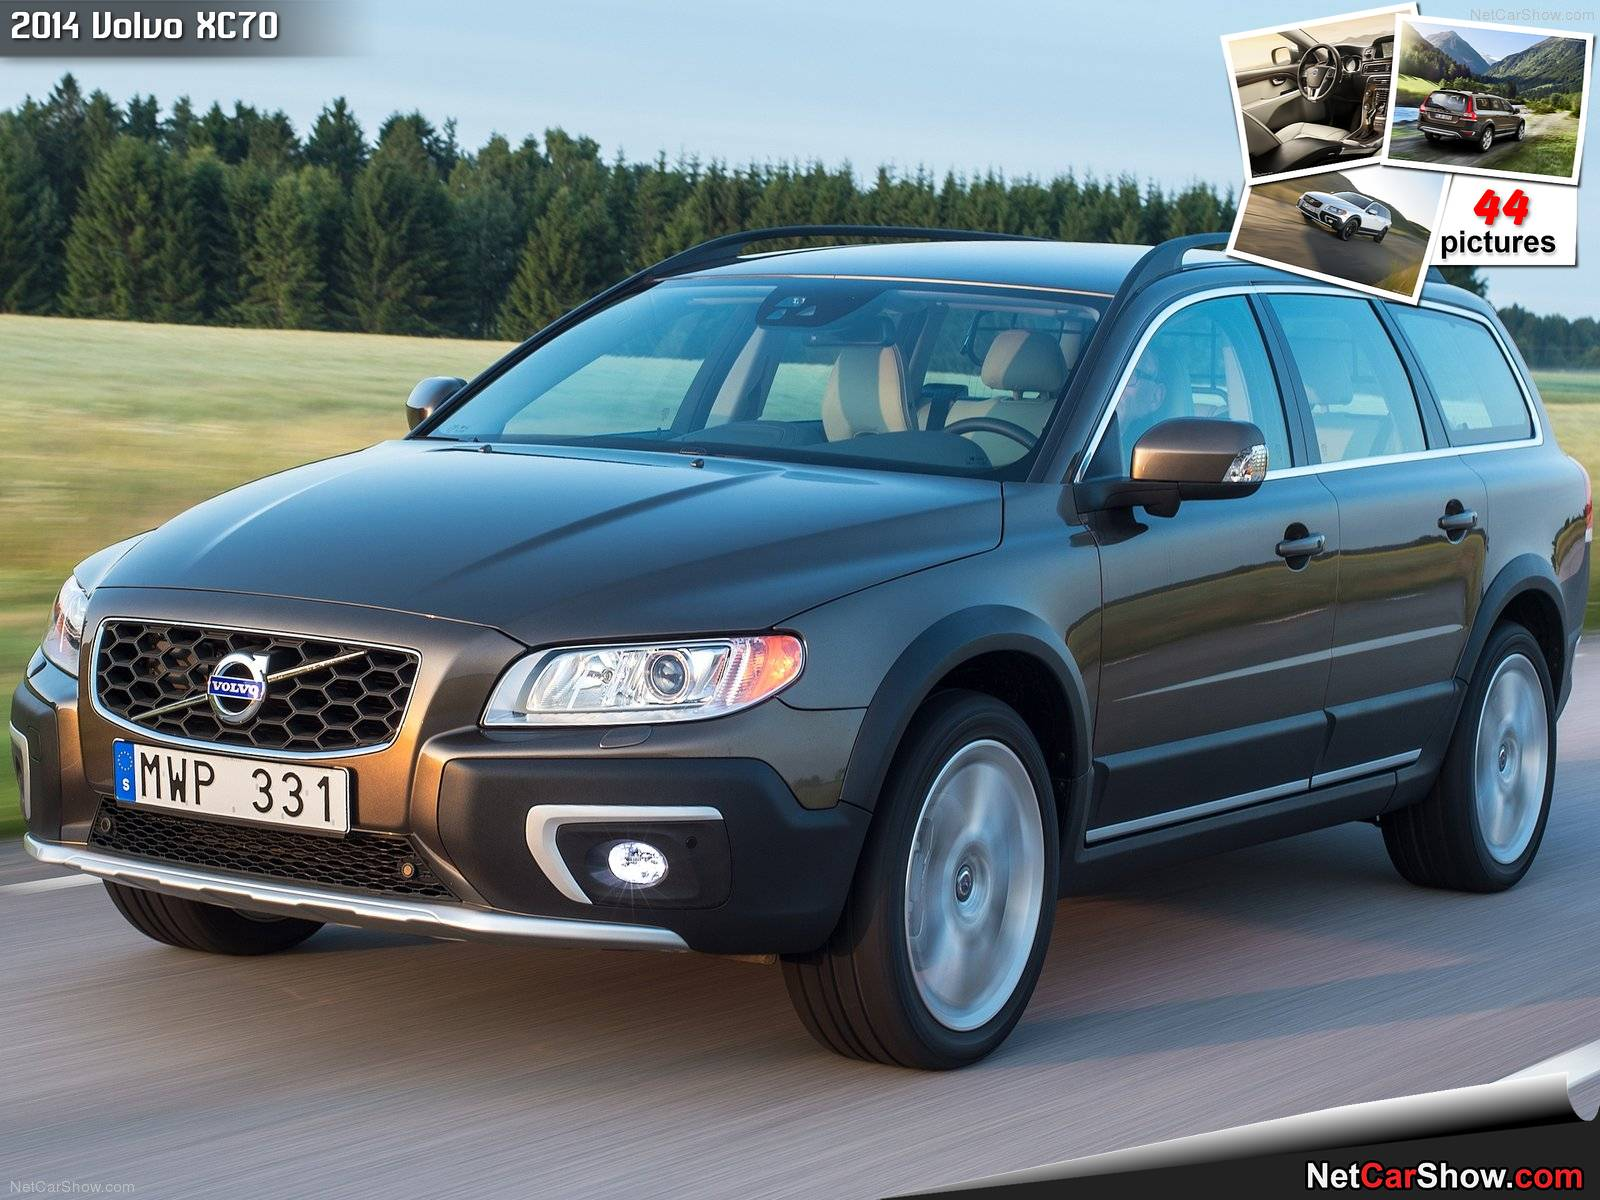 2014 volvo xc70 iii pictures information and specs auto. Black Bedroom Furniture Sets. Home Design Ideas